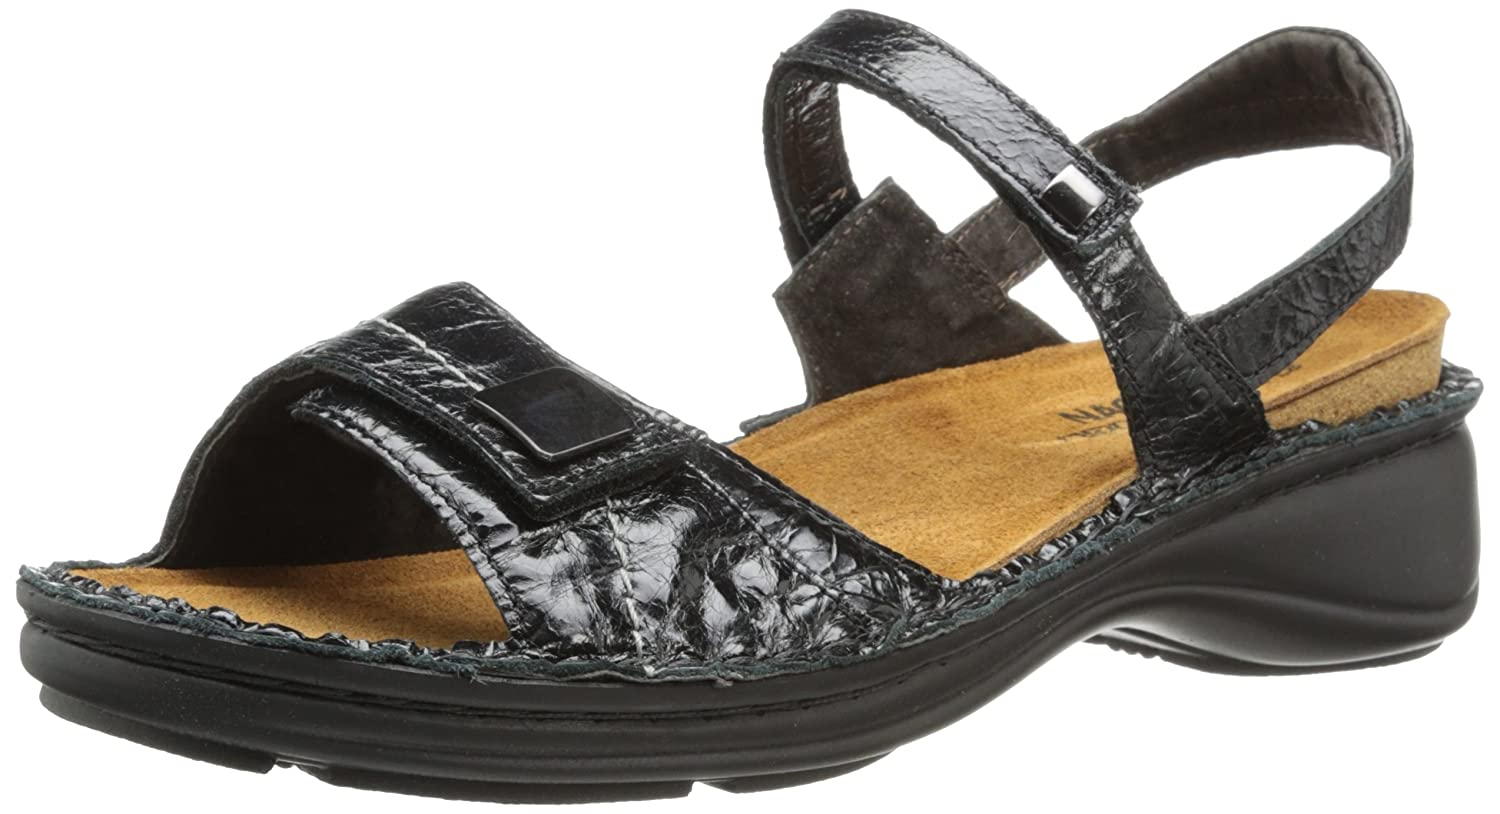 NAOT Women's Papaya Flat B004OSQV0C 41 EU/9.5 - Leather 10 M US|Black Madras Leather - 041e6f